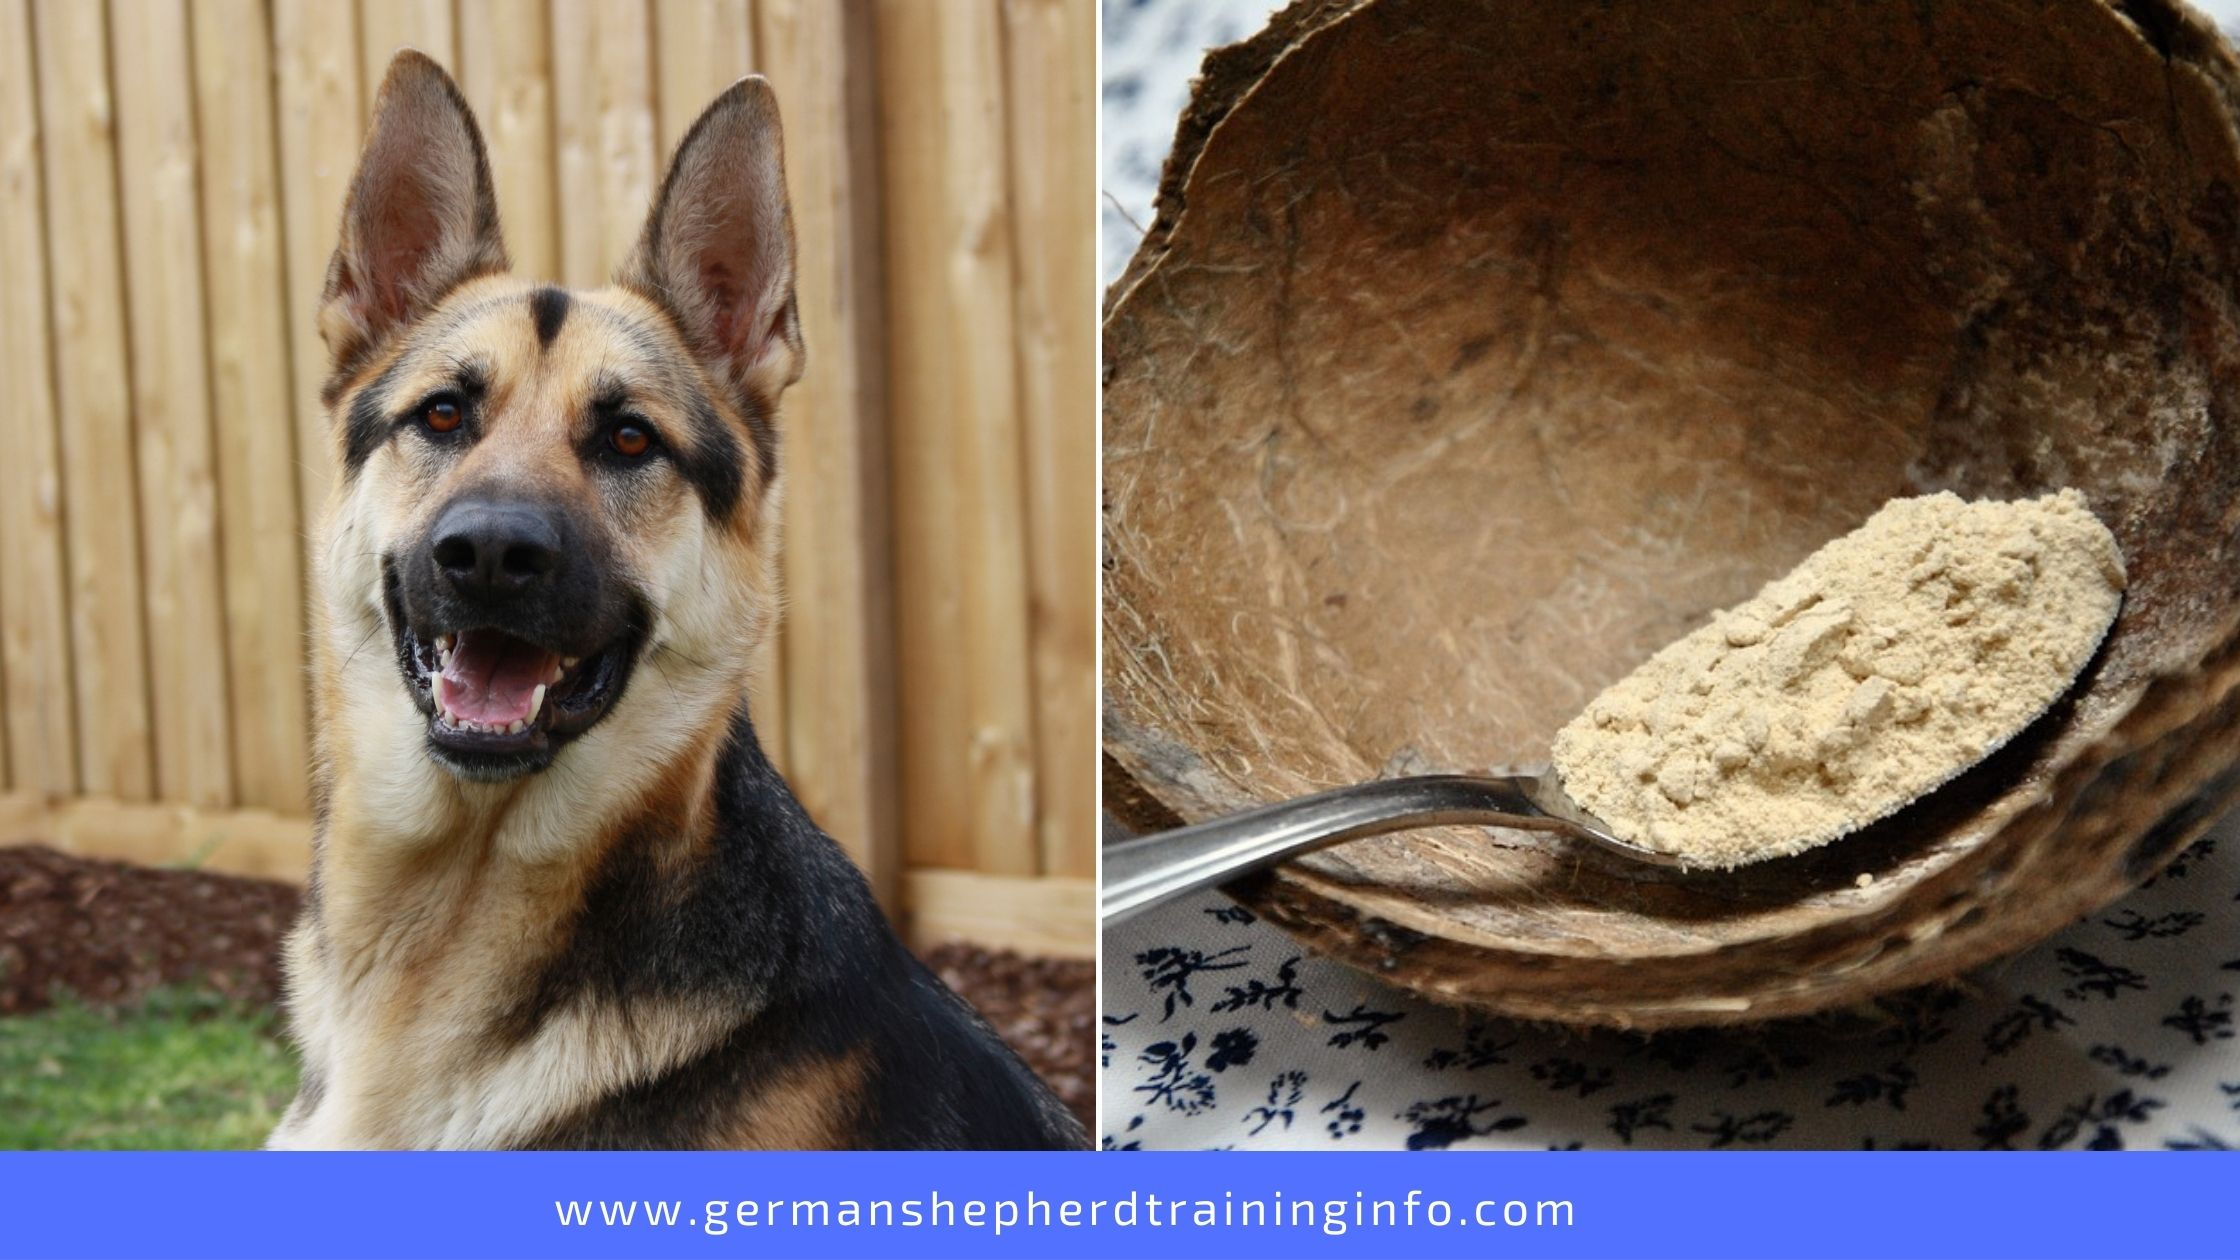 Can Dogs Eat Coconut Flour?